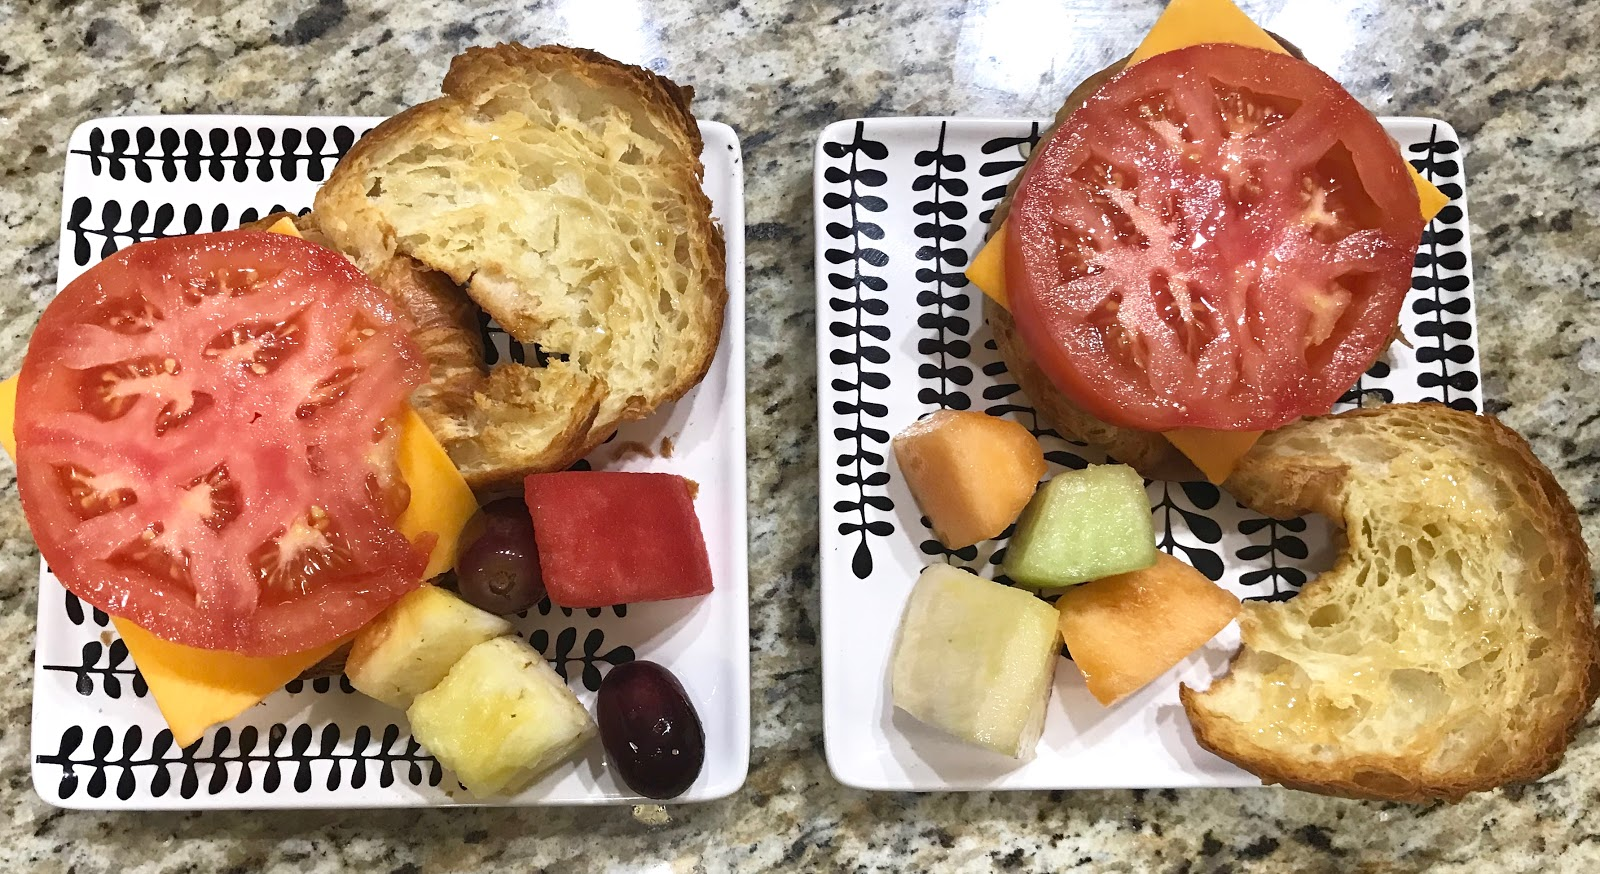 Image: Side fruit with tomato on bread